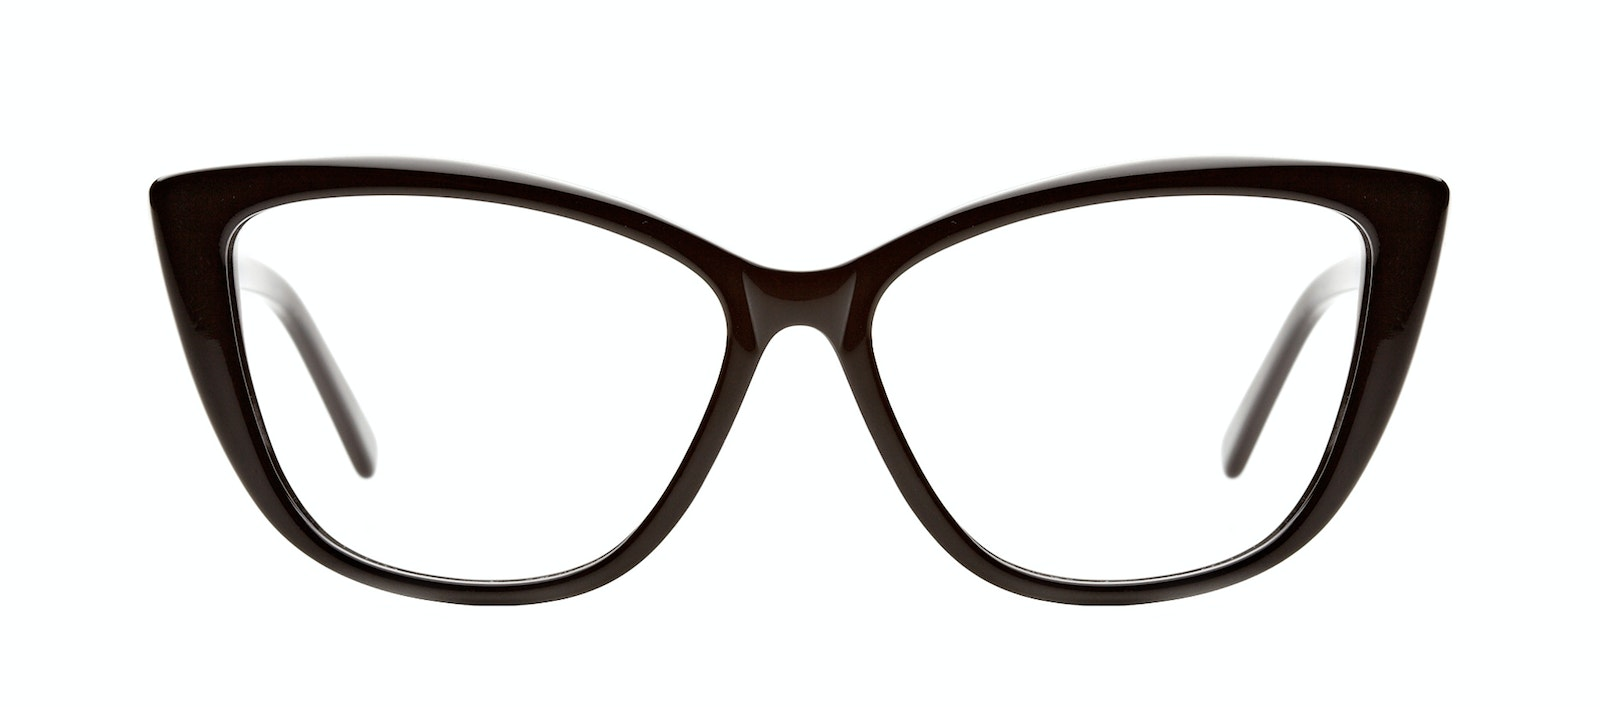 3c2e960f5ade Affordable Fashion Glasses Cat Eye Daring Cateye Eyeglasses Women Dolled Up  Black Front